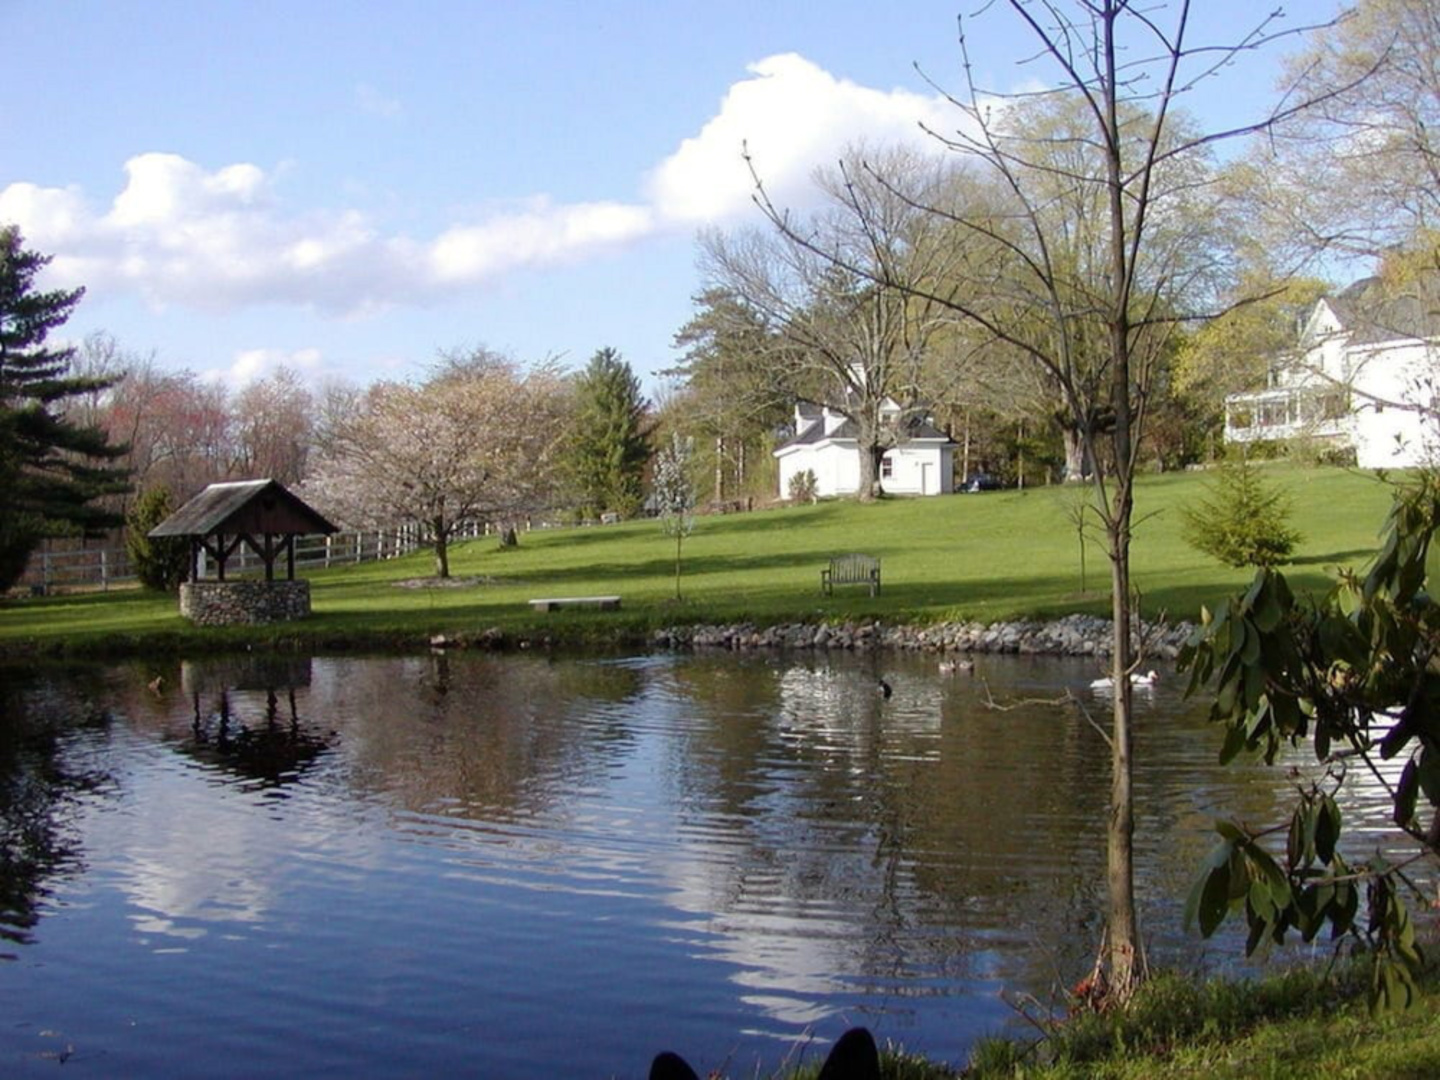 A body of water surrounded by trees at Inn On The Horse Farm.